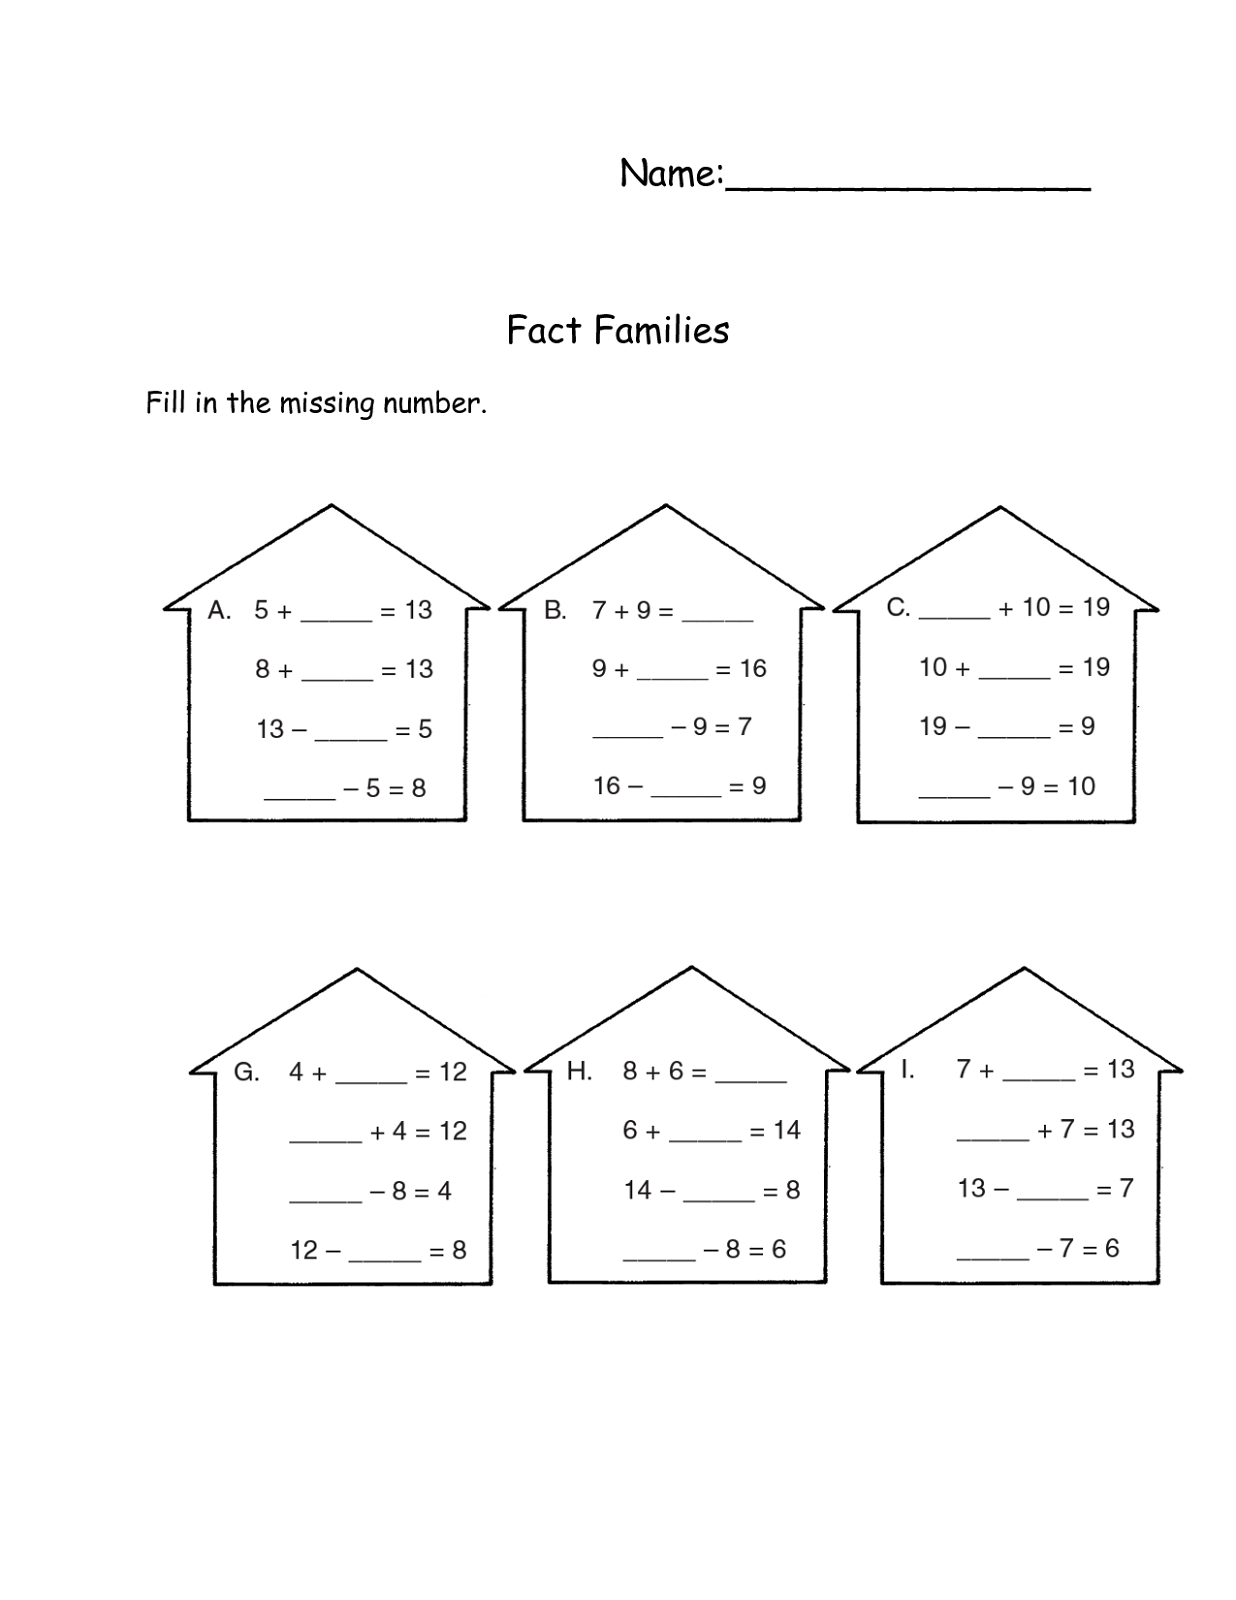 Fact families worksheets pdf